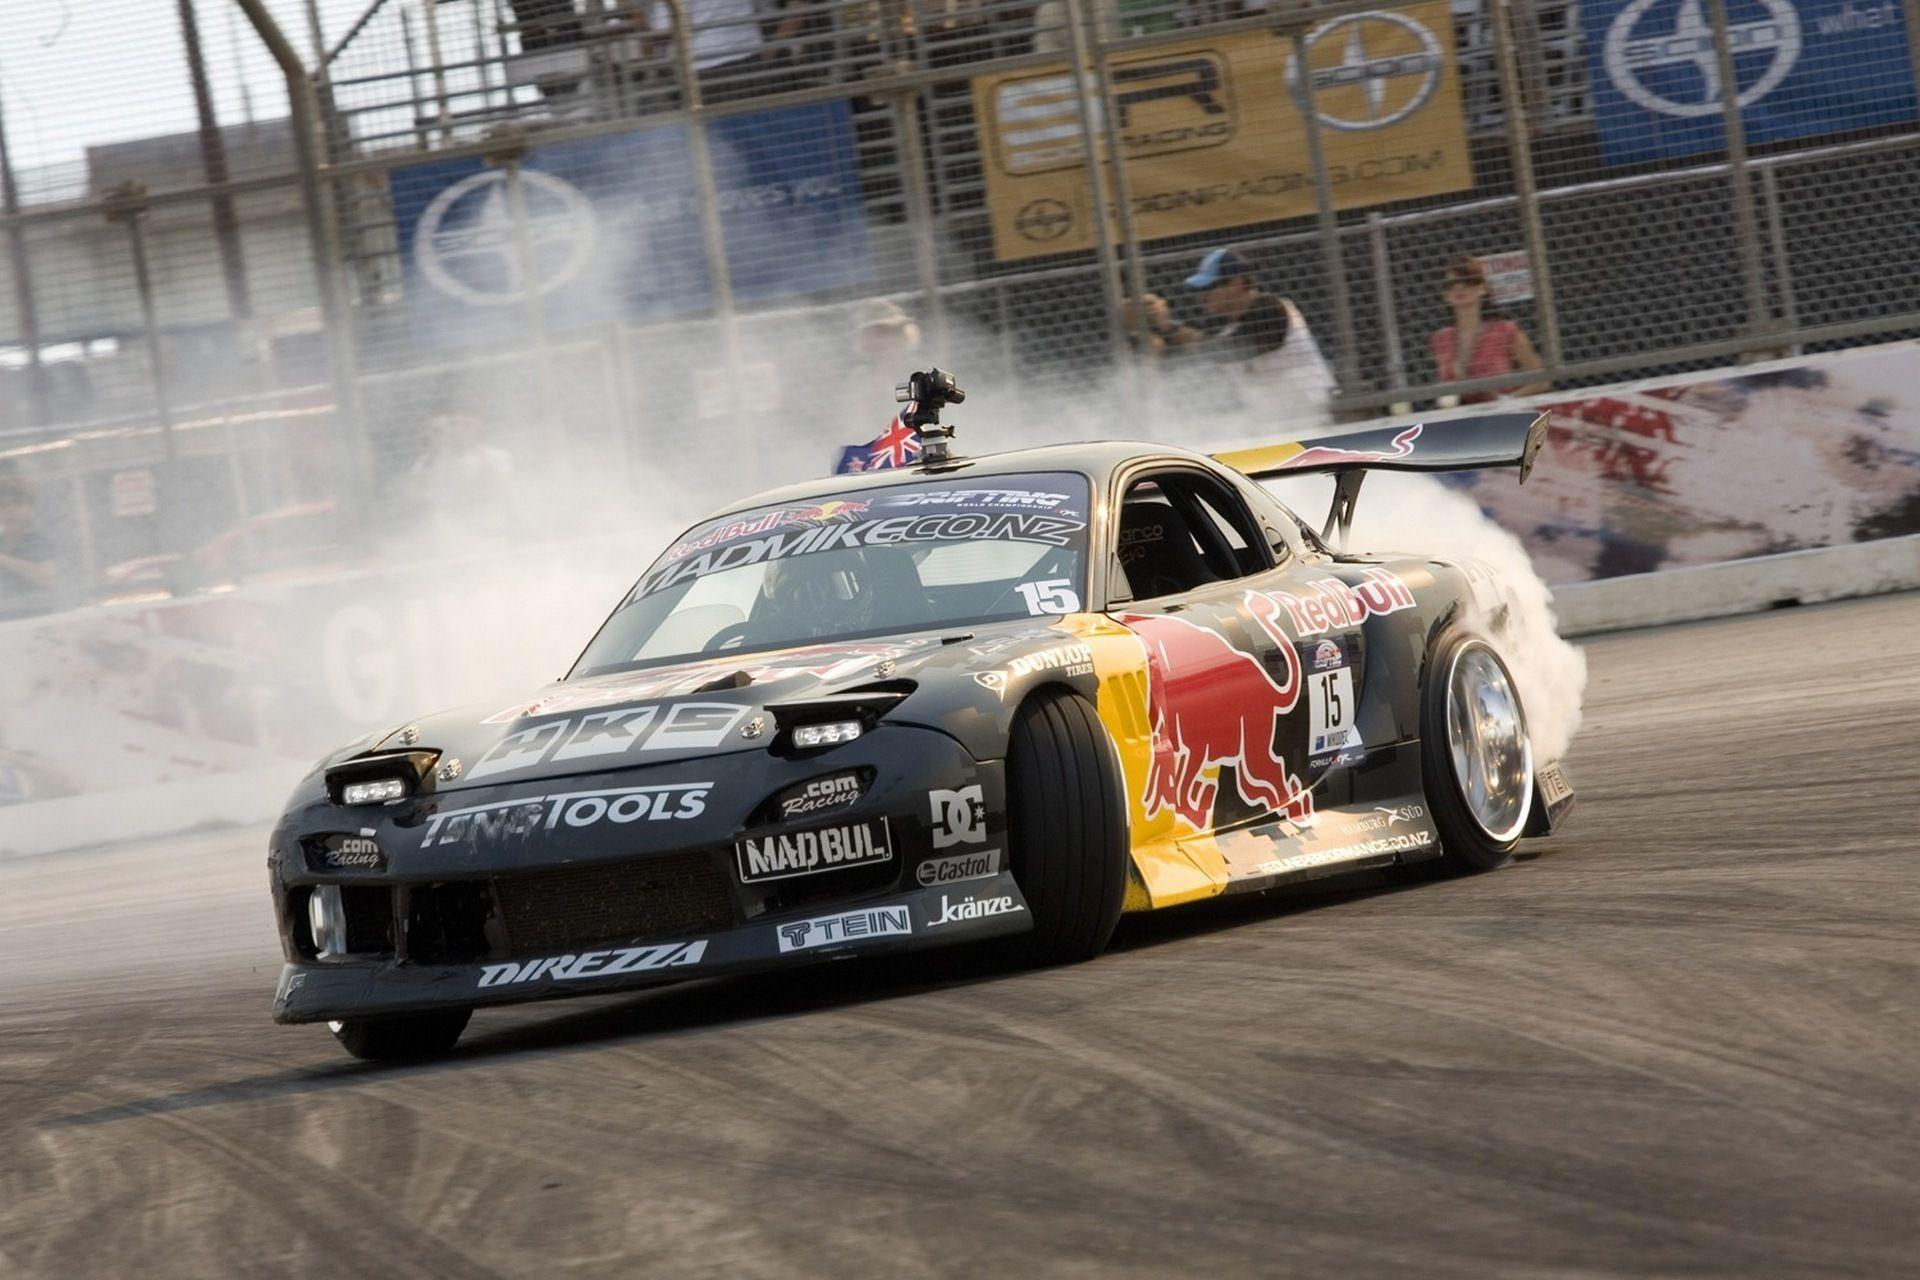 Wallpapers car, drift, wallpapers, mazda, rx7, drift, redbull, car ...